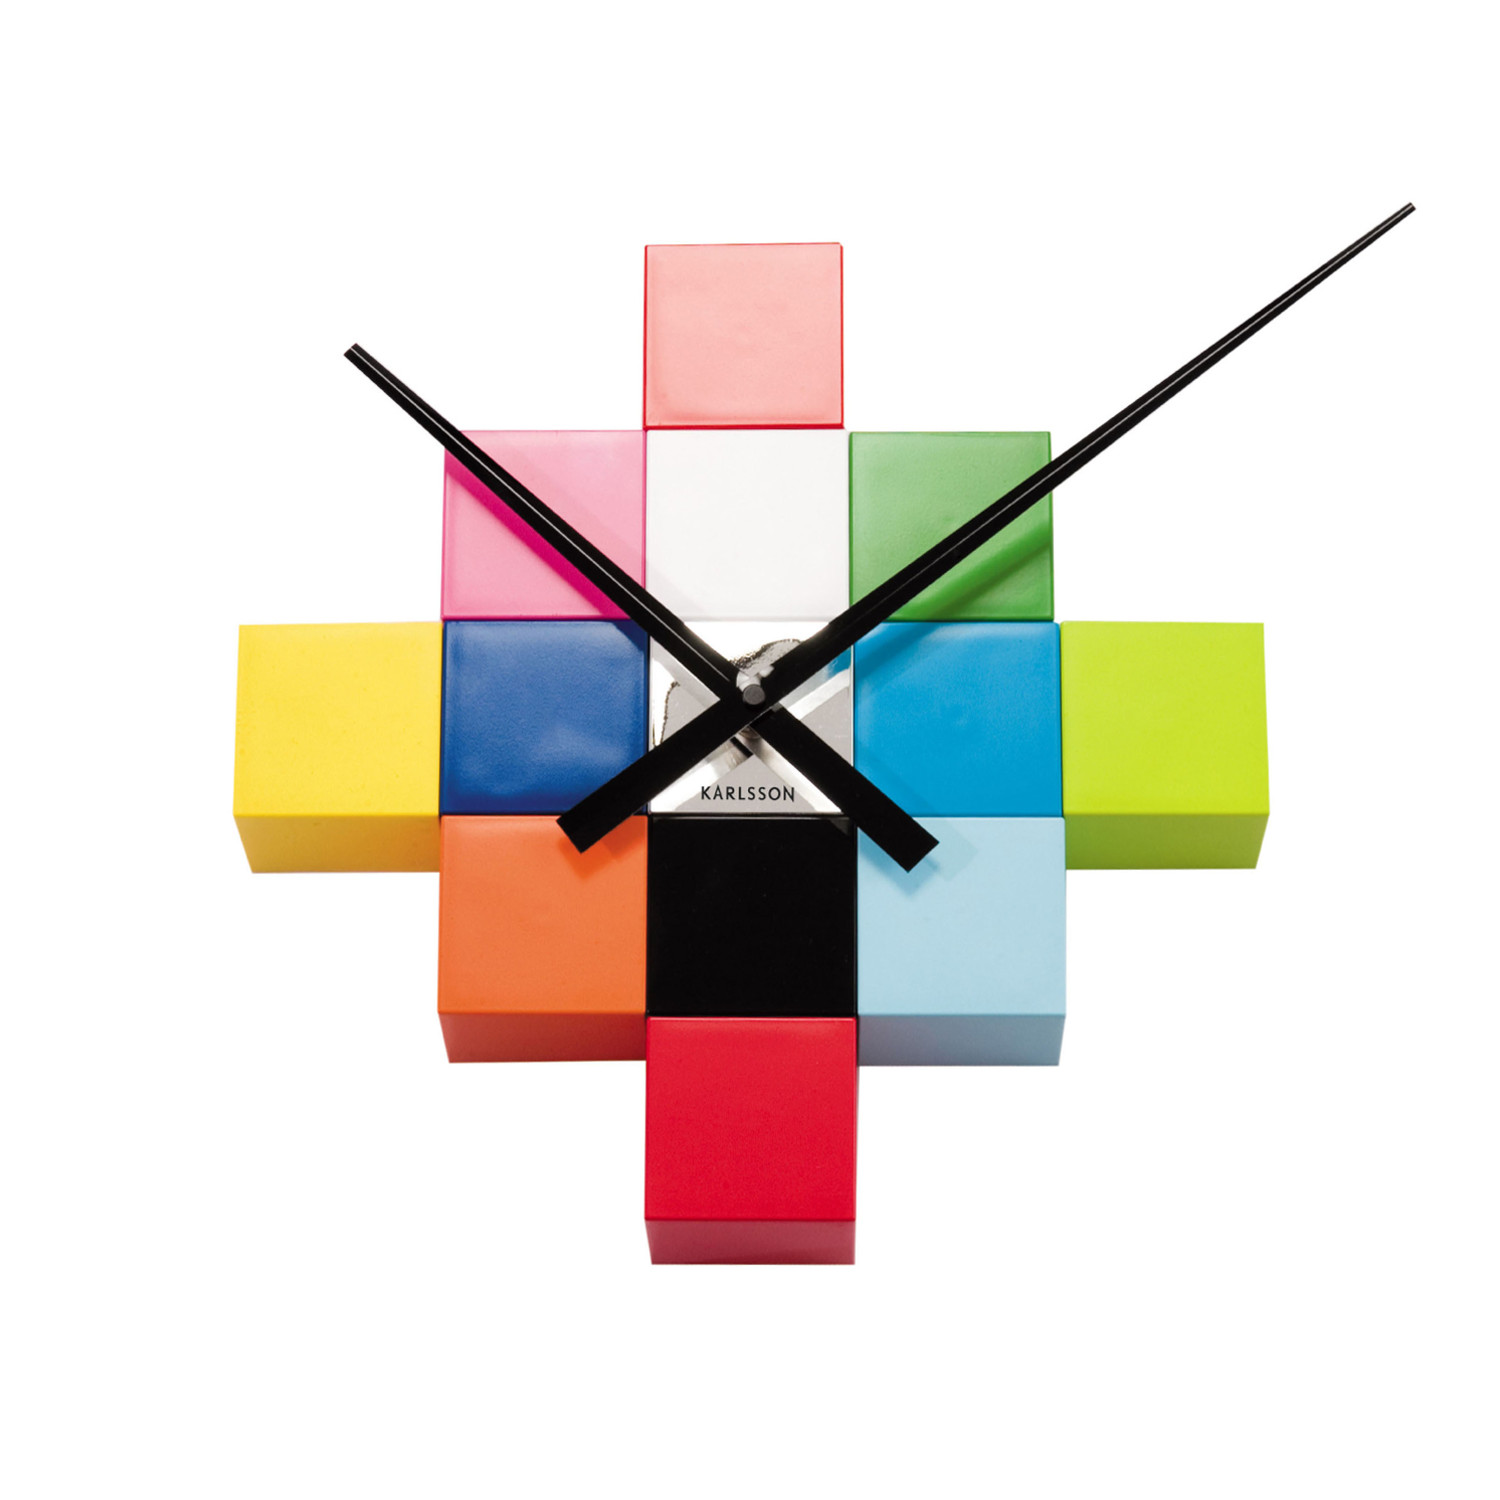 Wall Clock Diy Cubic Multi Color Karlsson By Present Time Inc